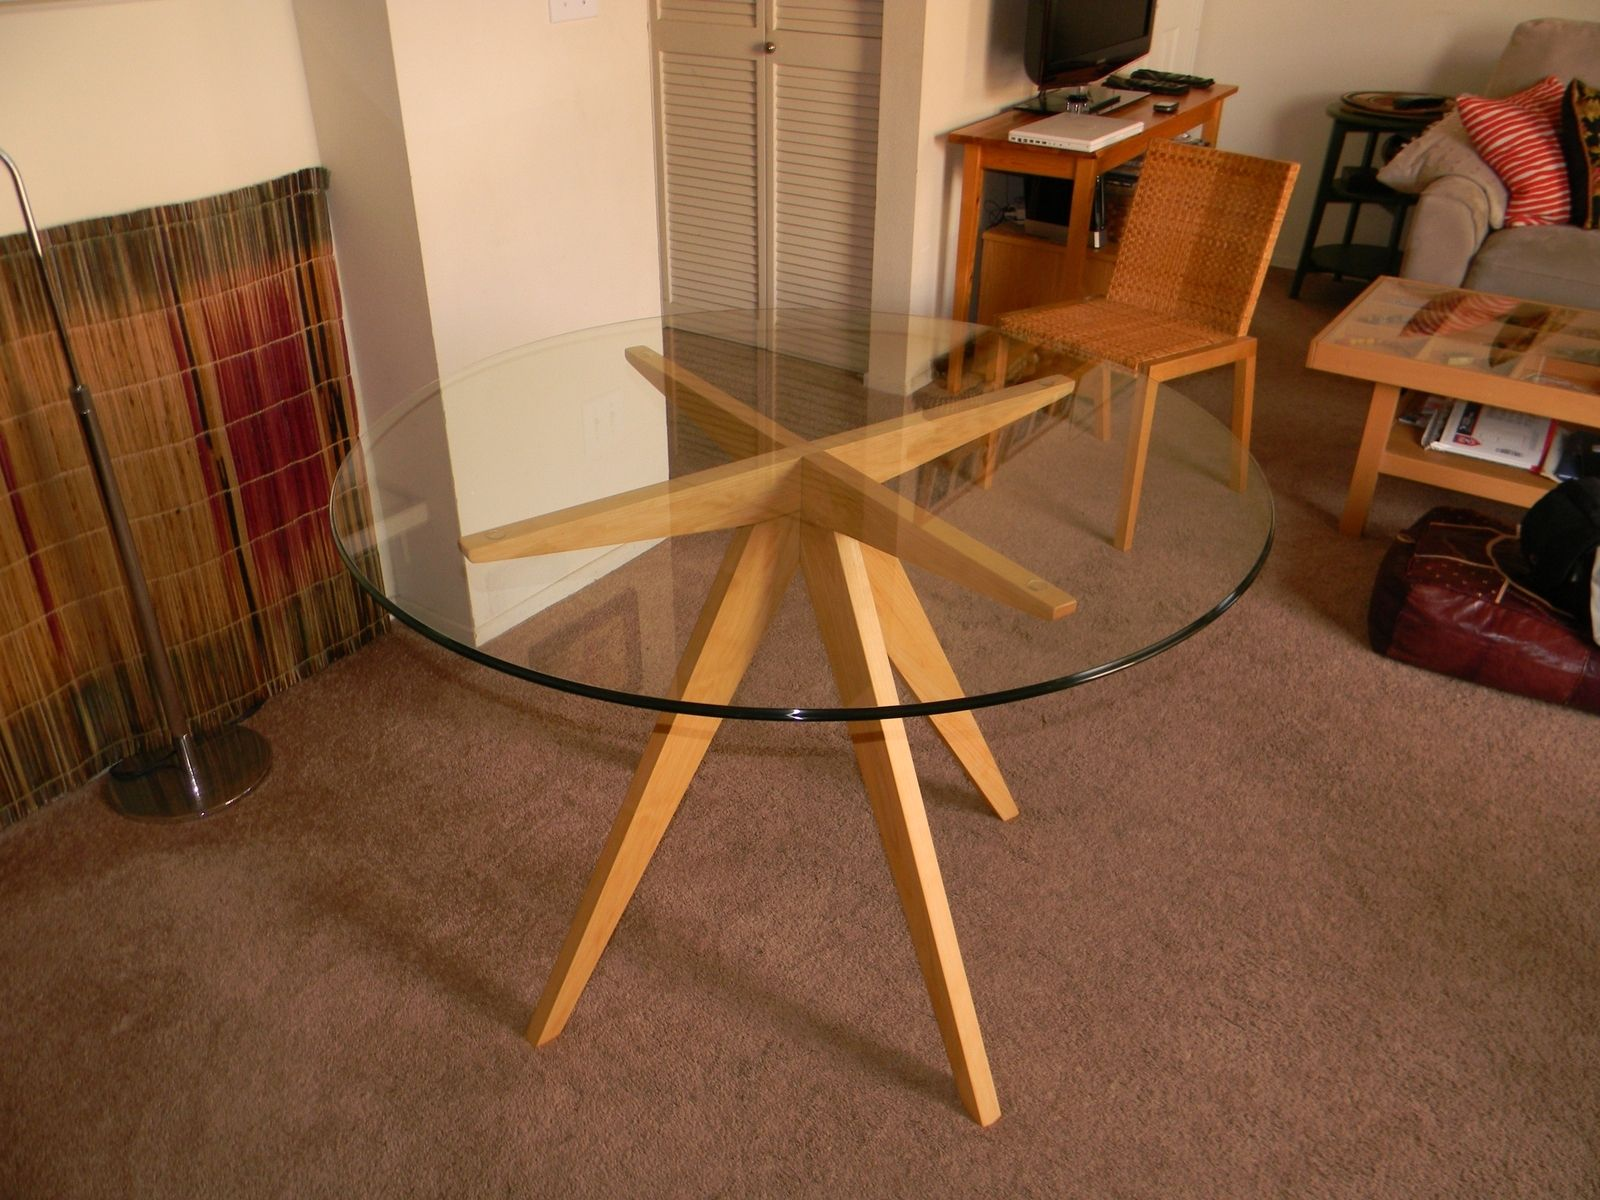 Hand Made Ibis Table Base For Glass Top Dining Table By Antikea - Round kitchen table with glass top